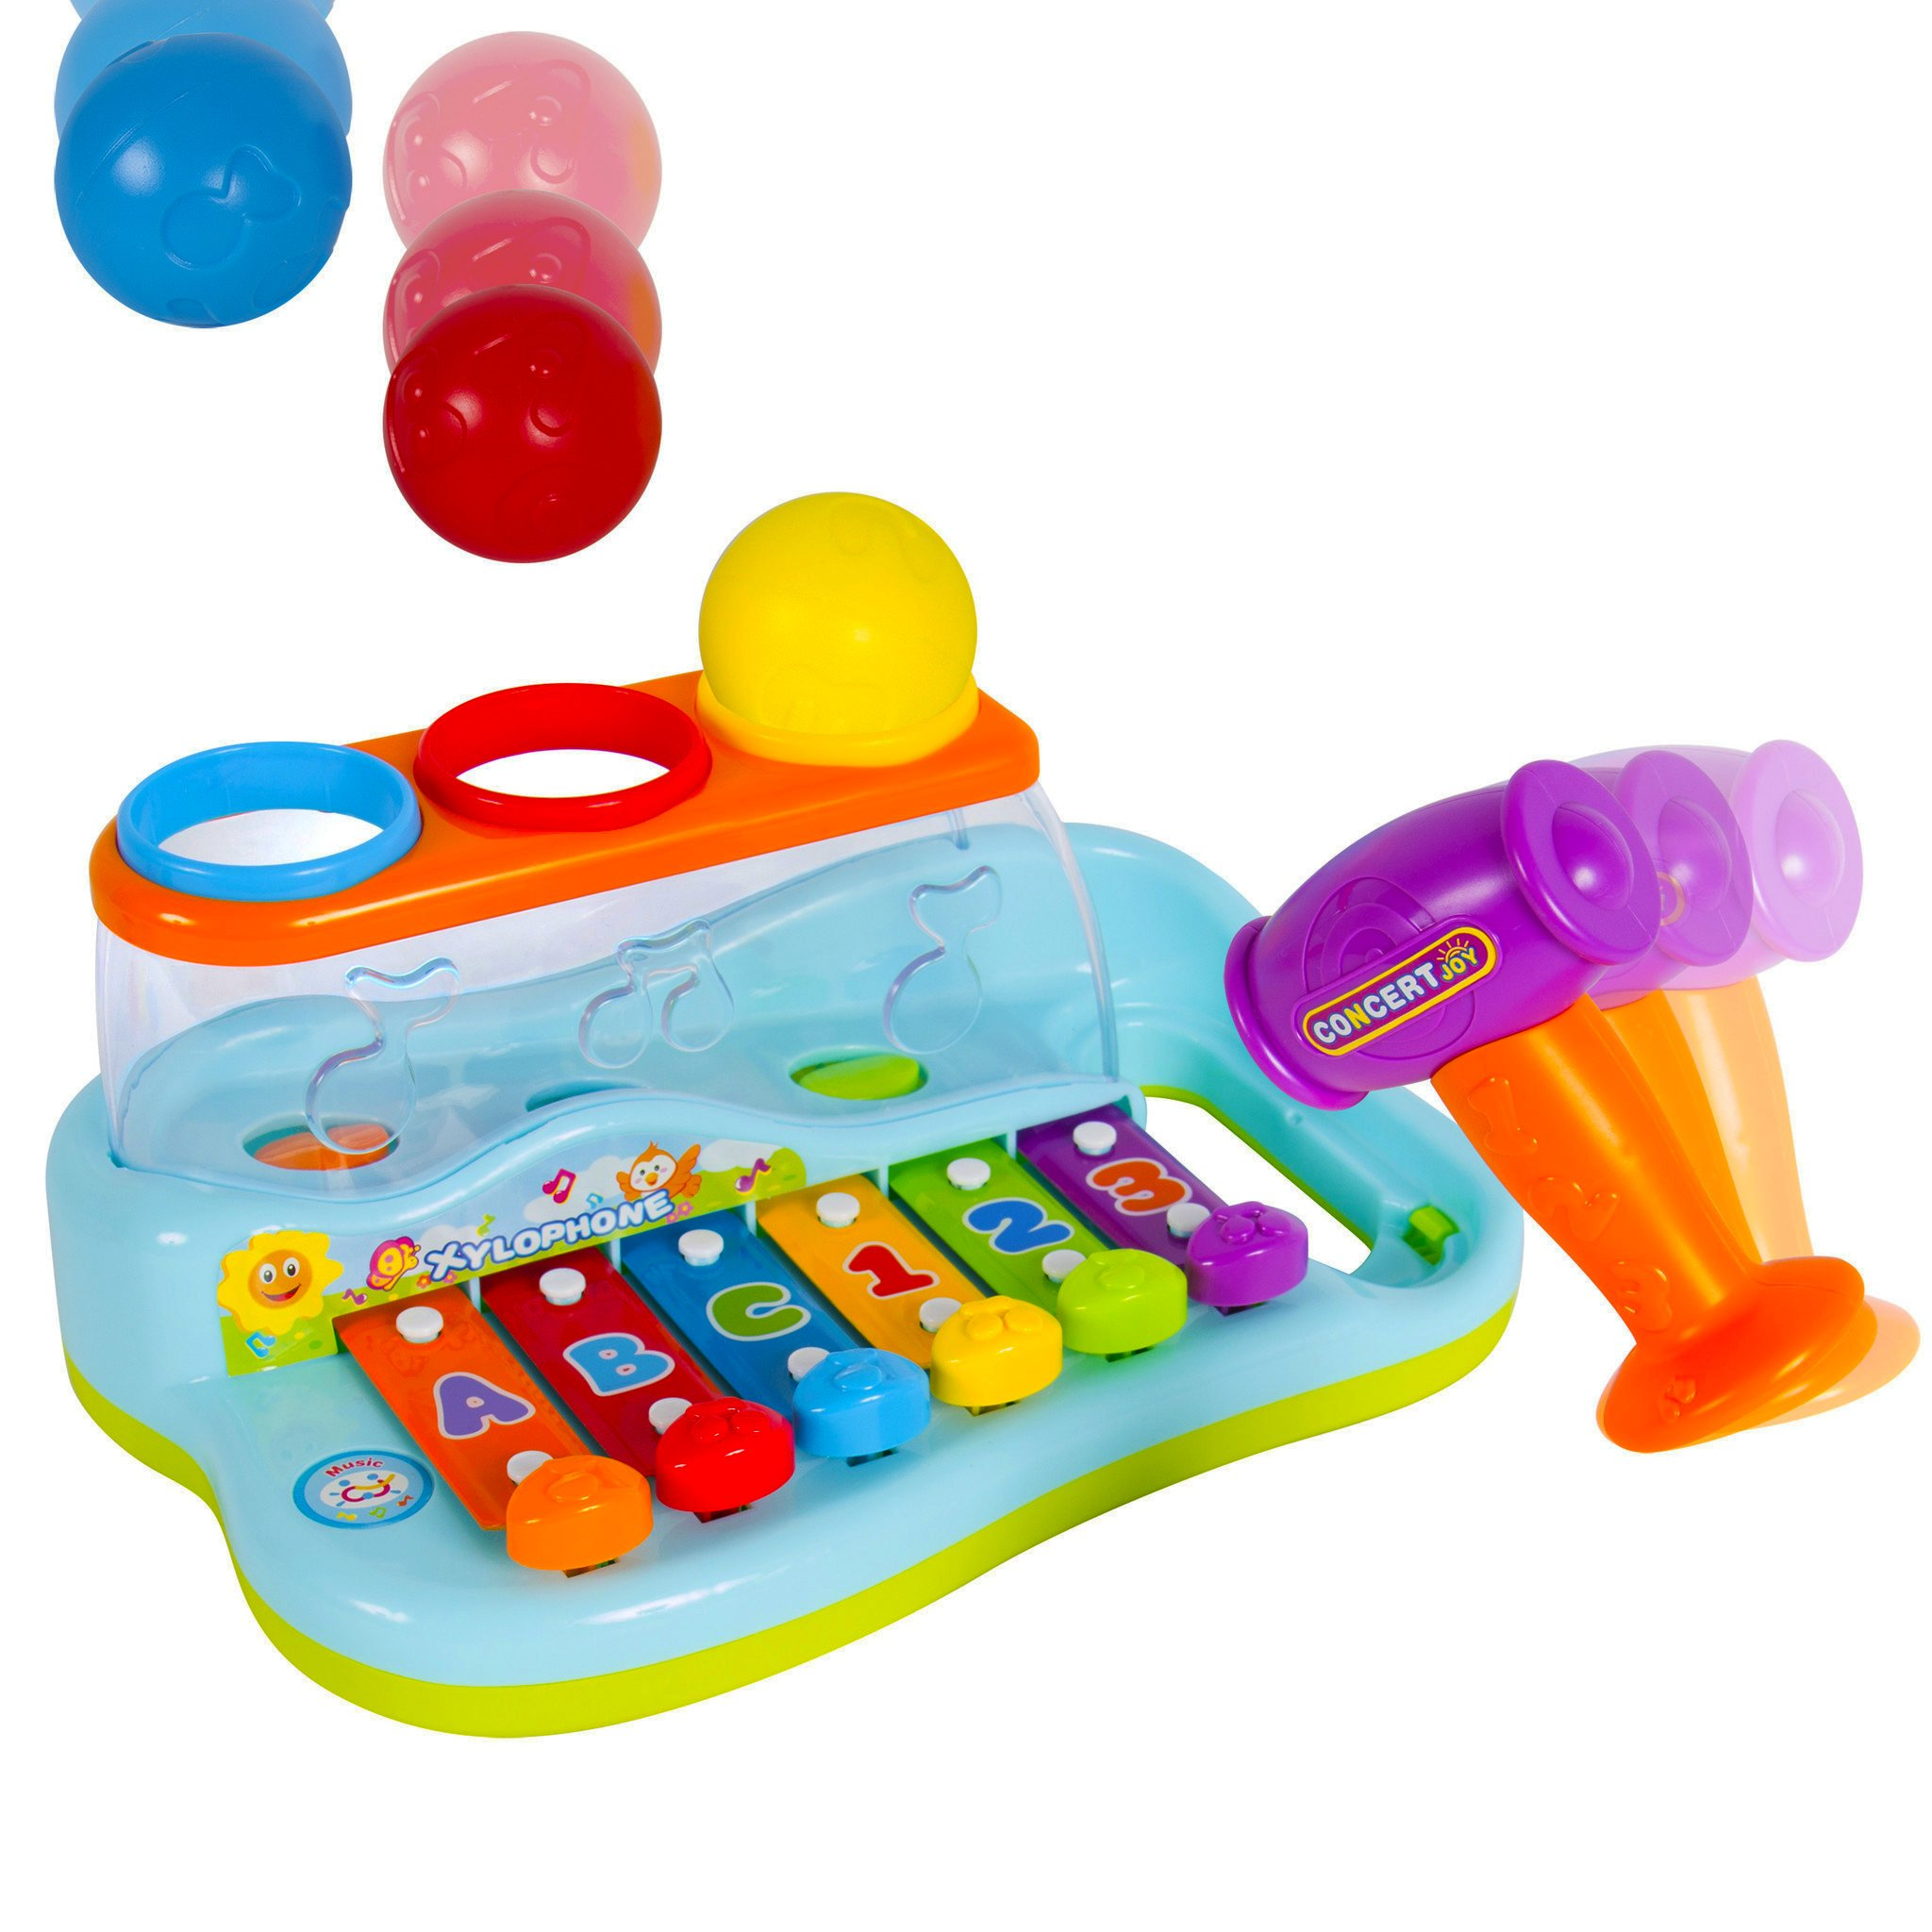 Liberty Imports Rainbow Xylophone Piano Pounding Bench for Kids with Balls and Hammer by Liberty Imports (Image #1)